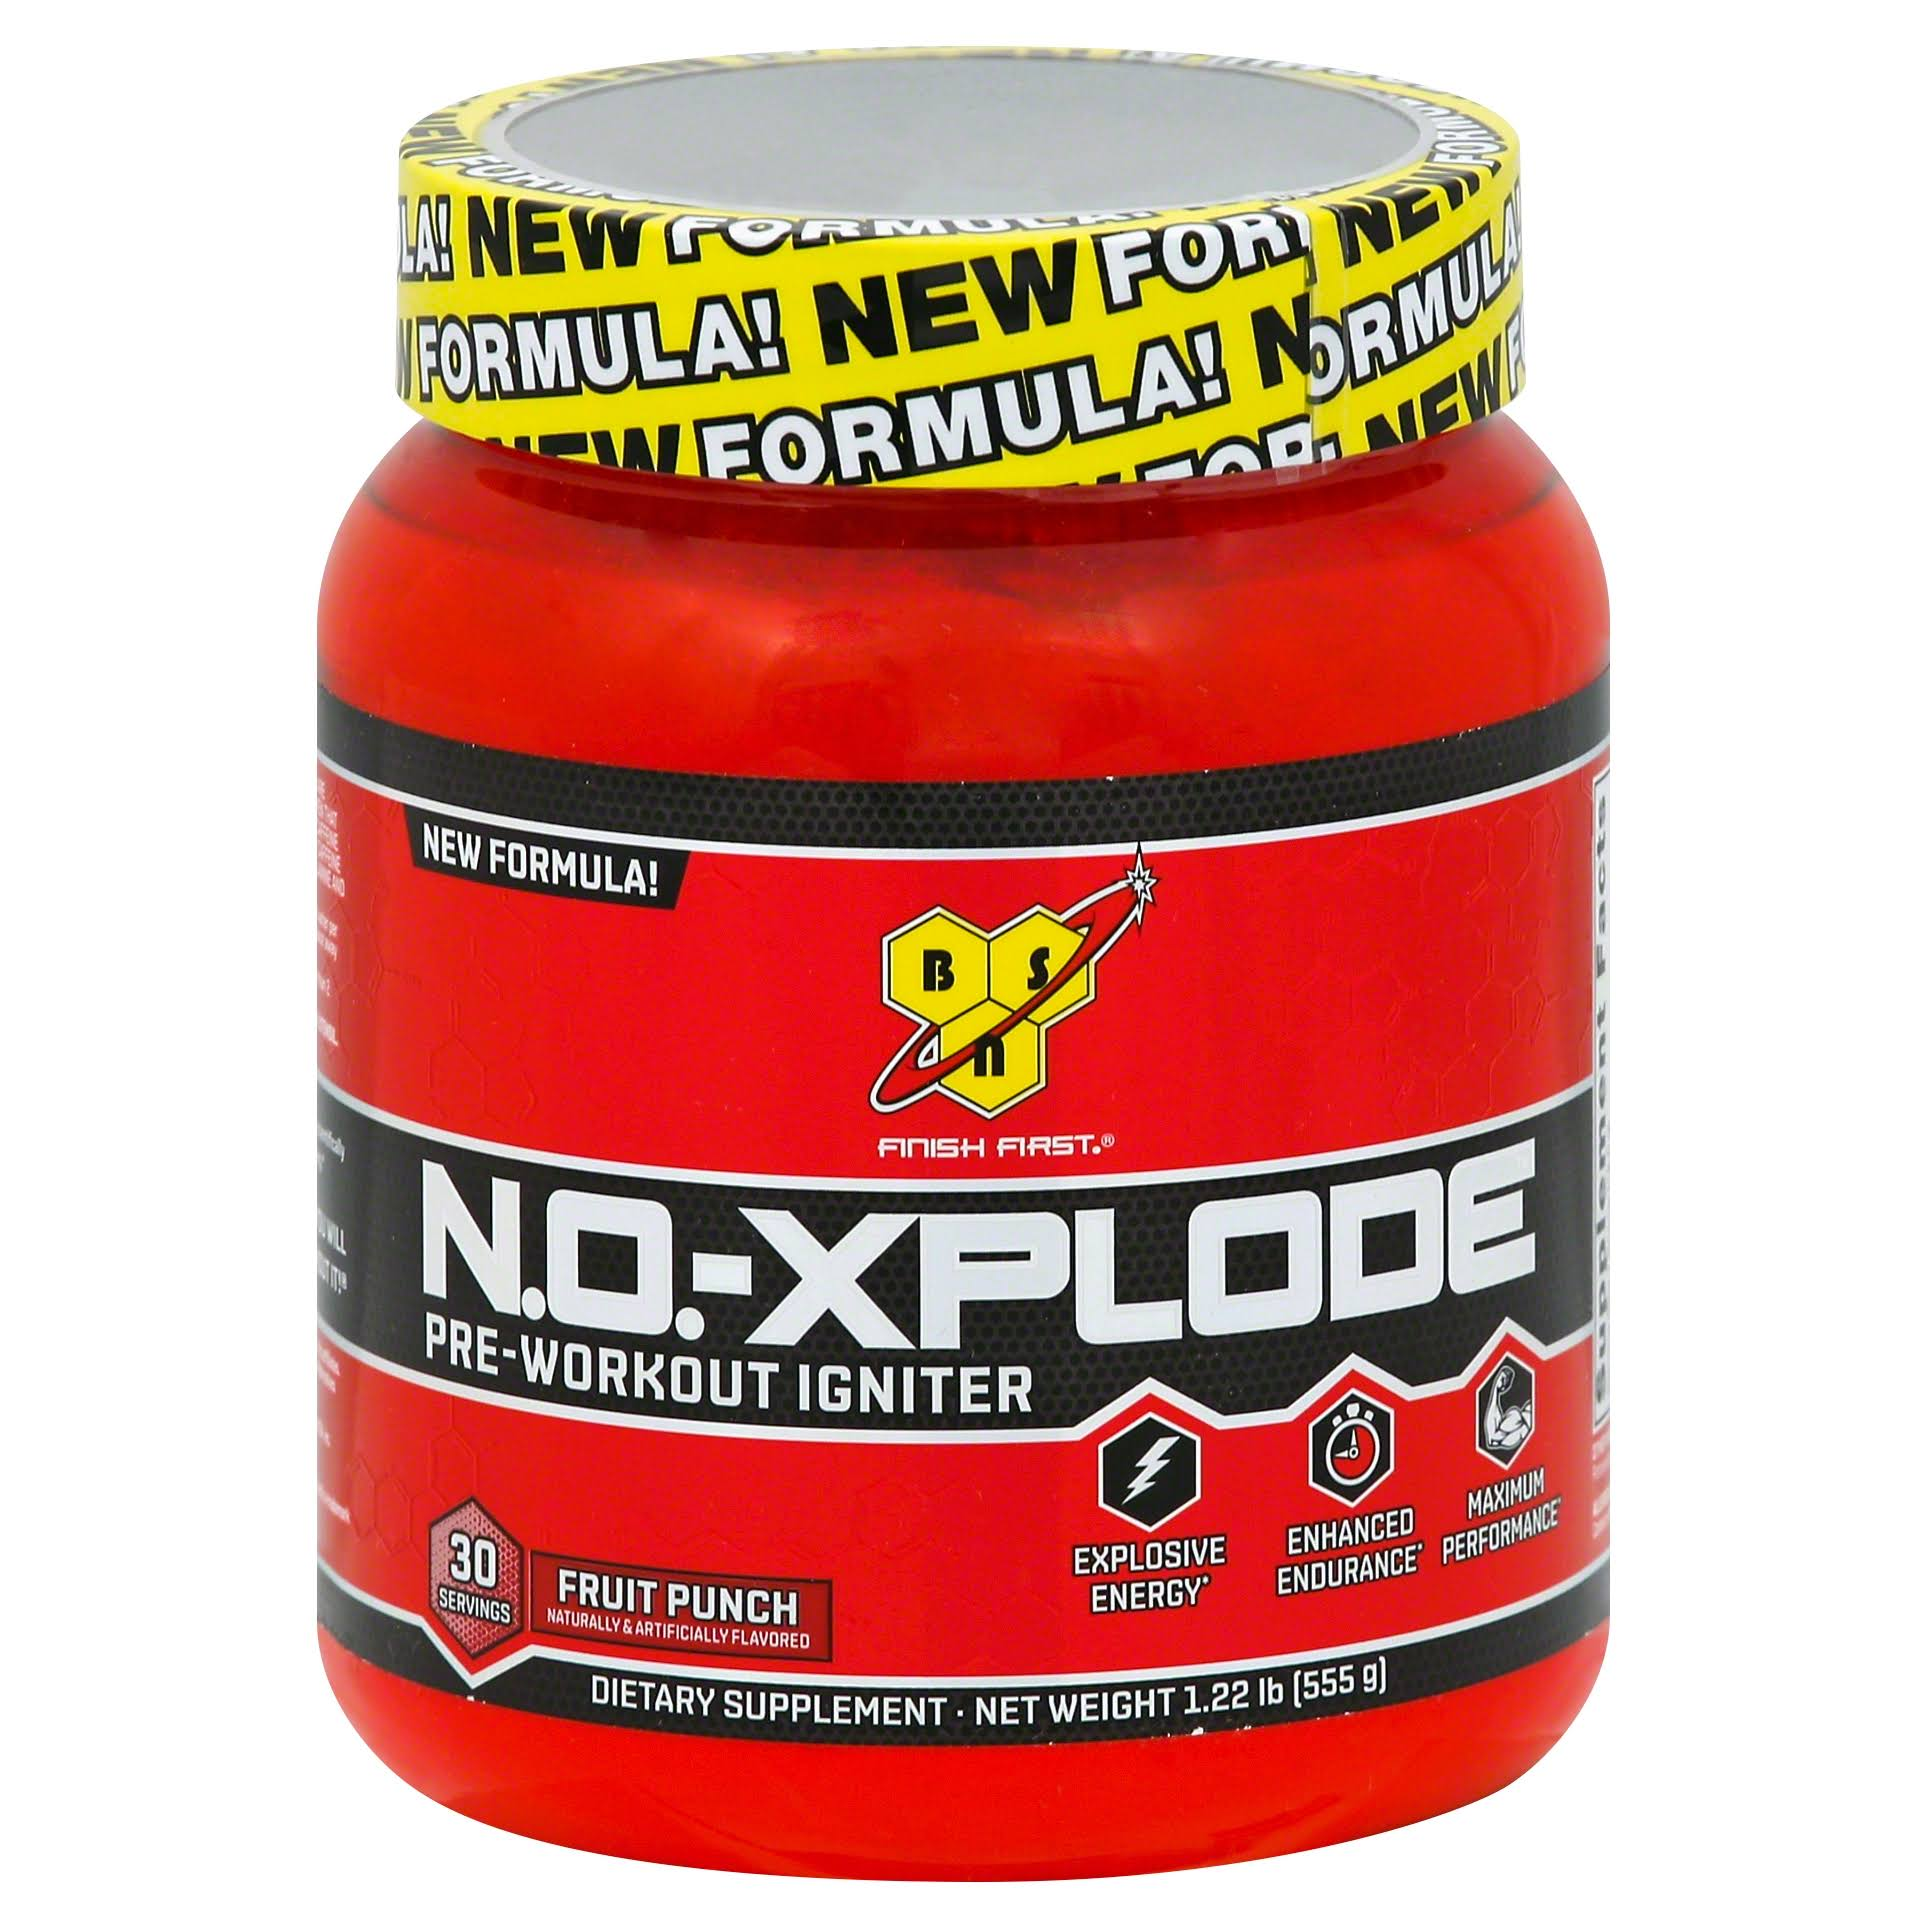 BSN N.O.-Xplode Pre-workout Igniter - Fruit Punch, 555g